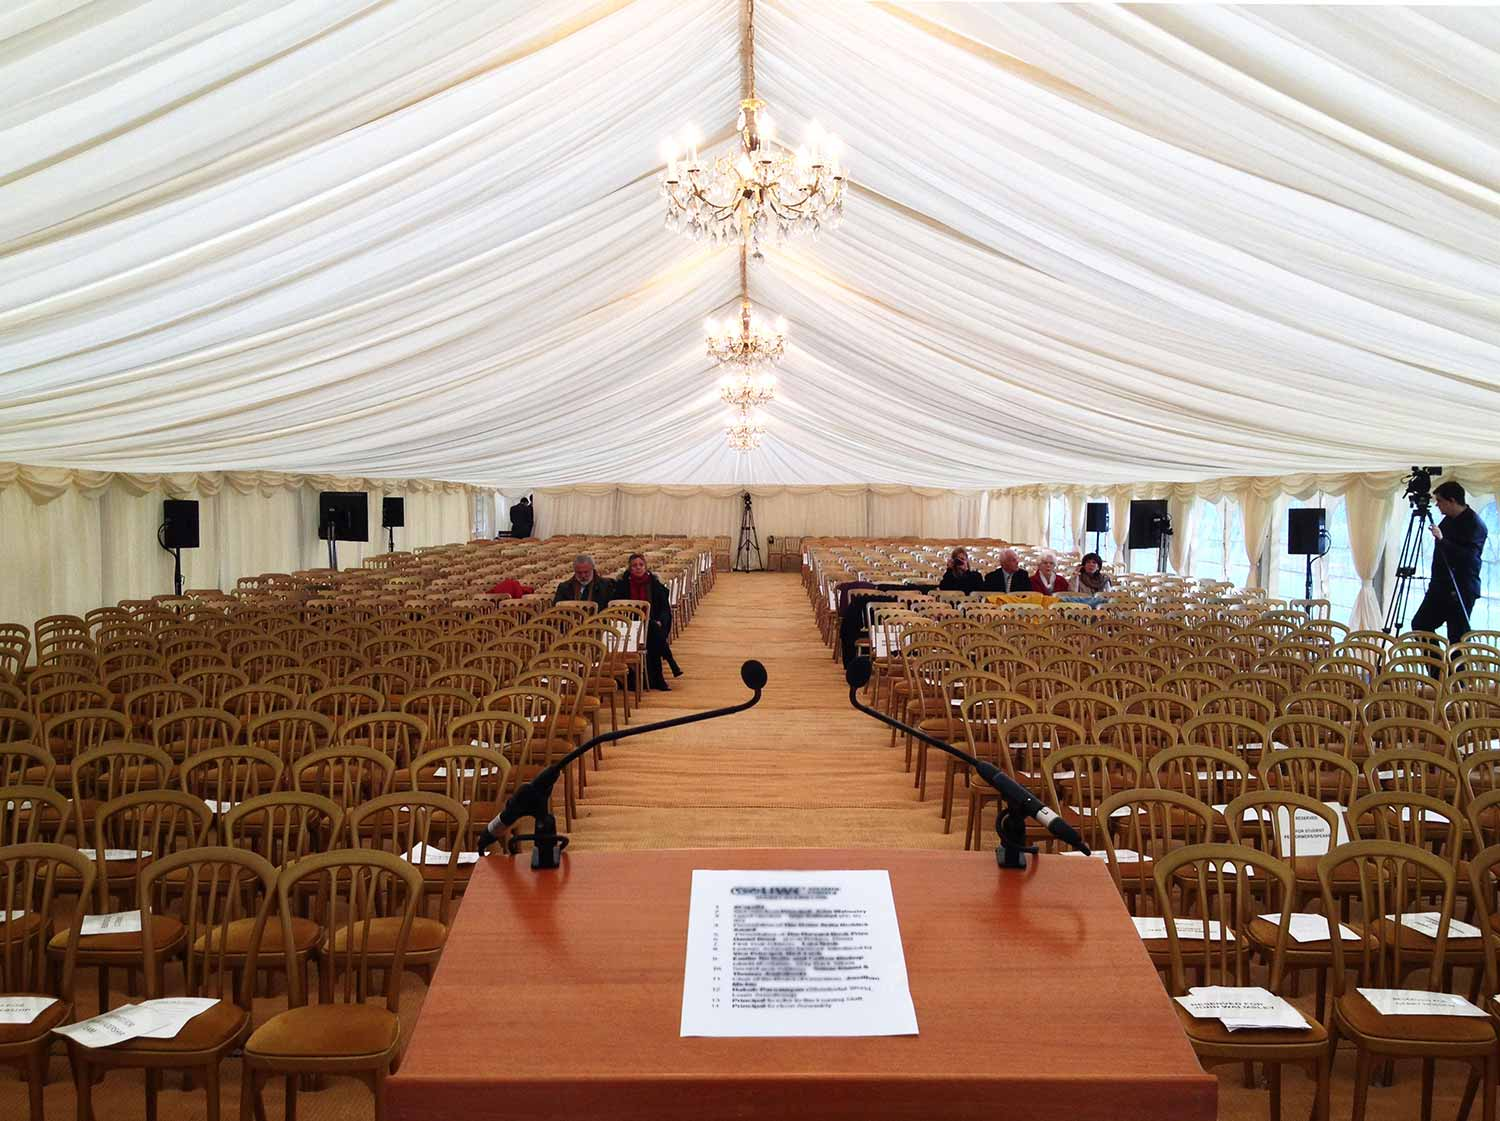 Audio visual equipment for conference in marquee with lectern 1500